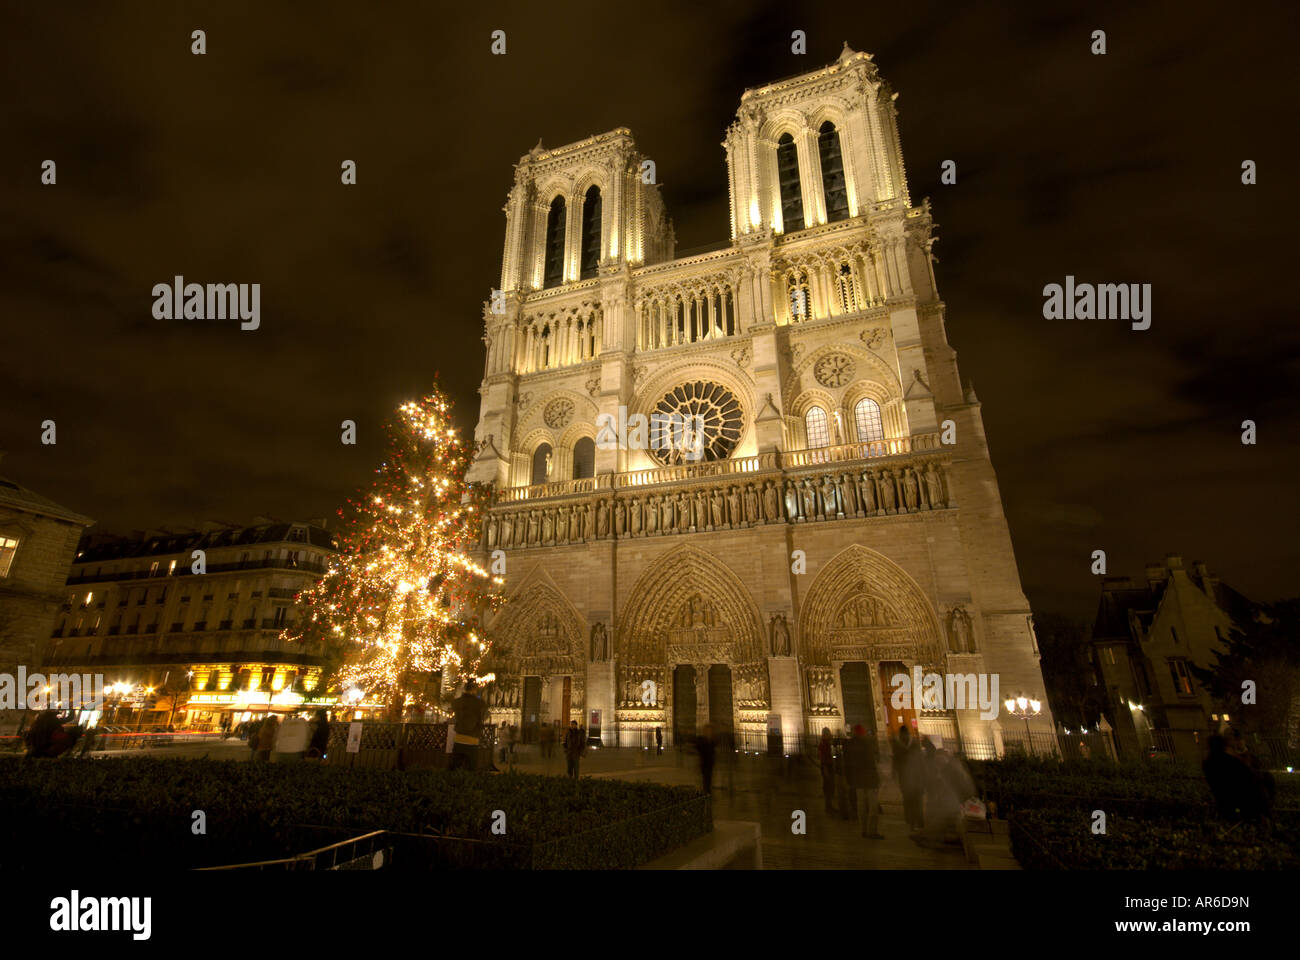 Notre Dame cathedral facade at night with Christmas tree Stock Photo ...